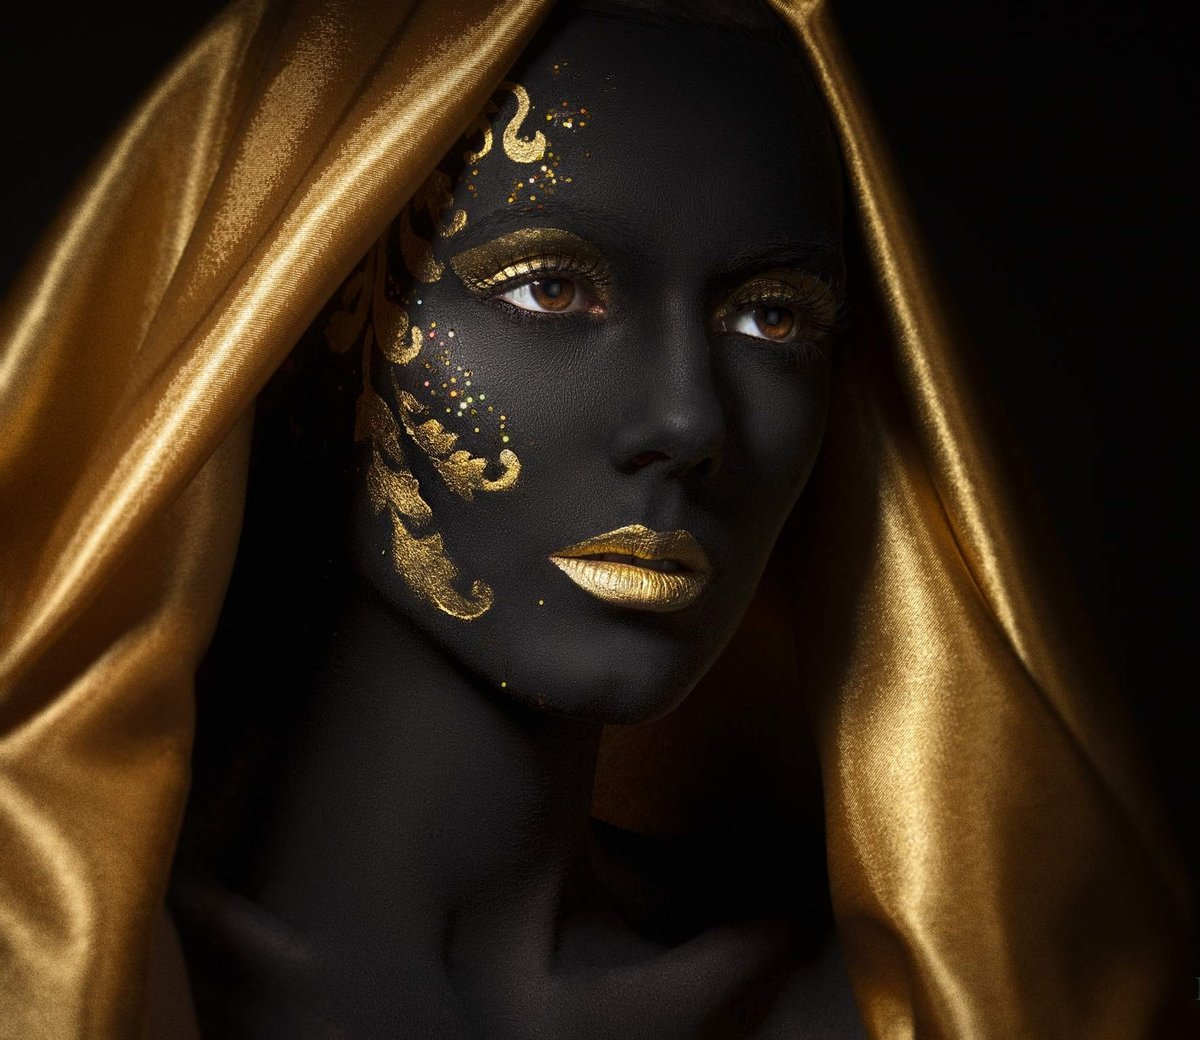 human arms painted gold